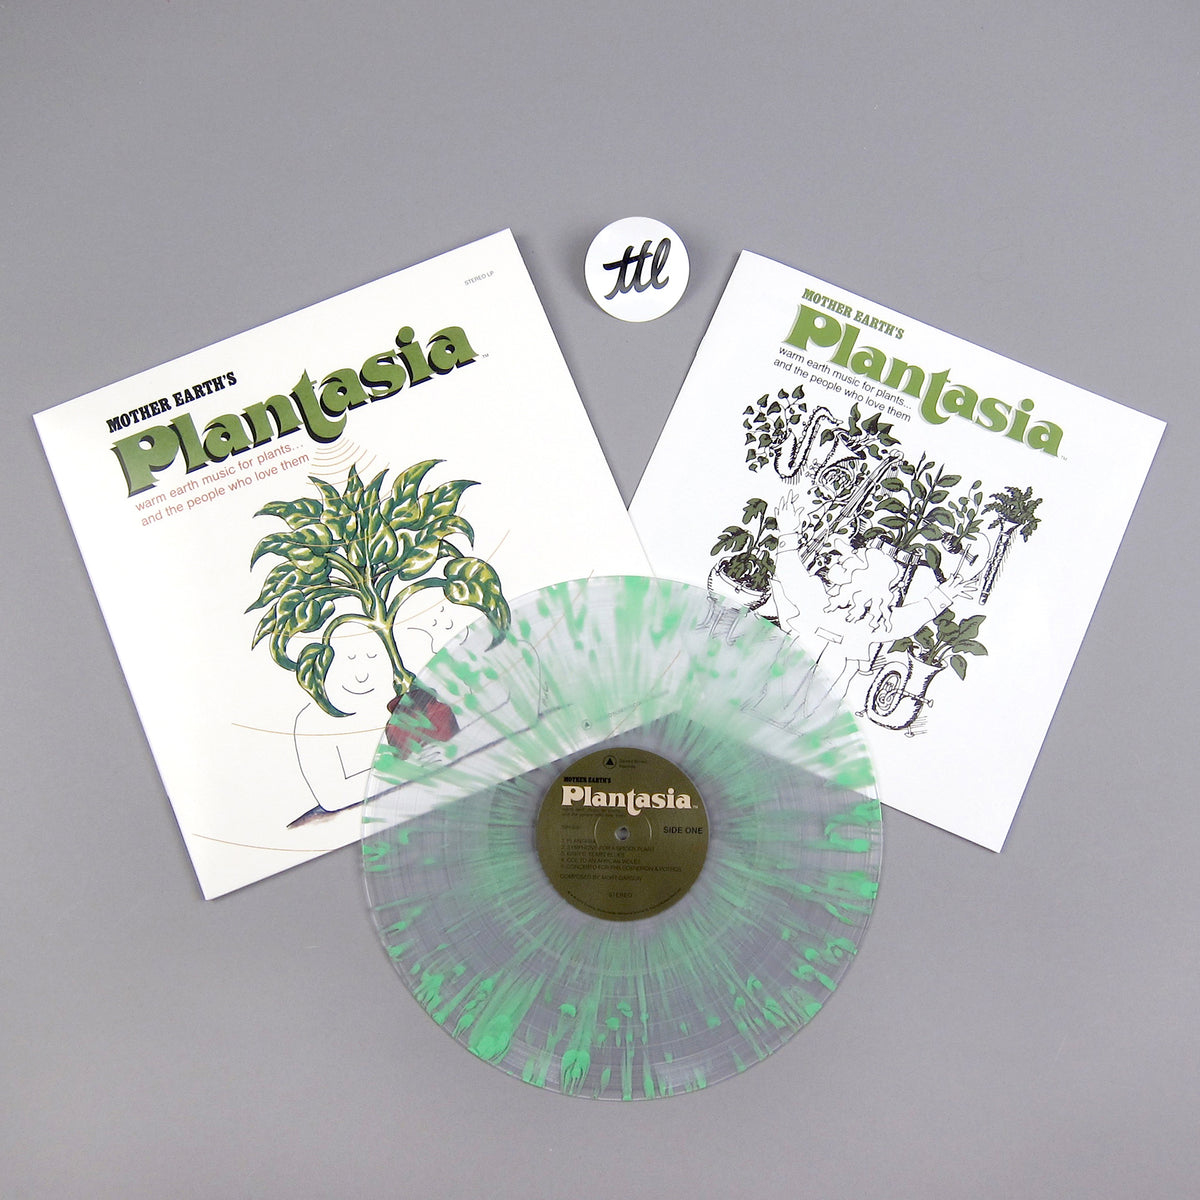 Mort Garson: Mother Earth's Plantasia (Chlorophyll Splatter Colored Vinyl) Vinyl LP - Turntable Lab Exclusive